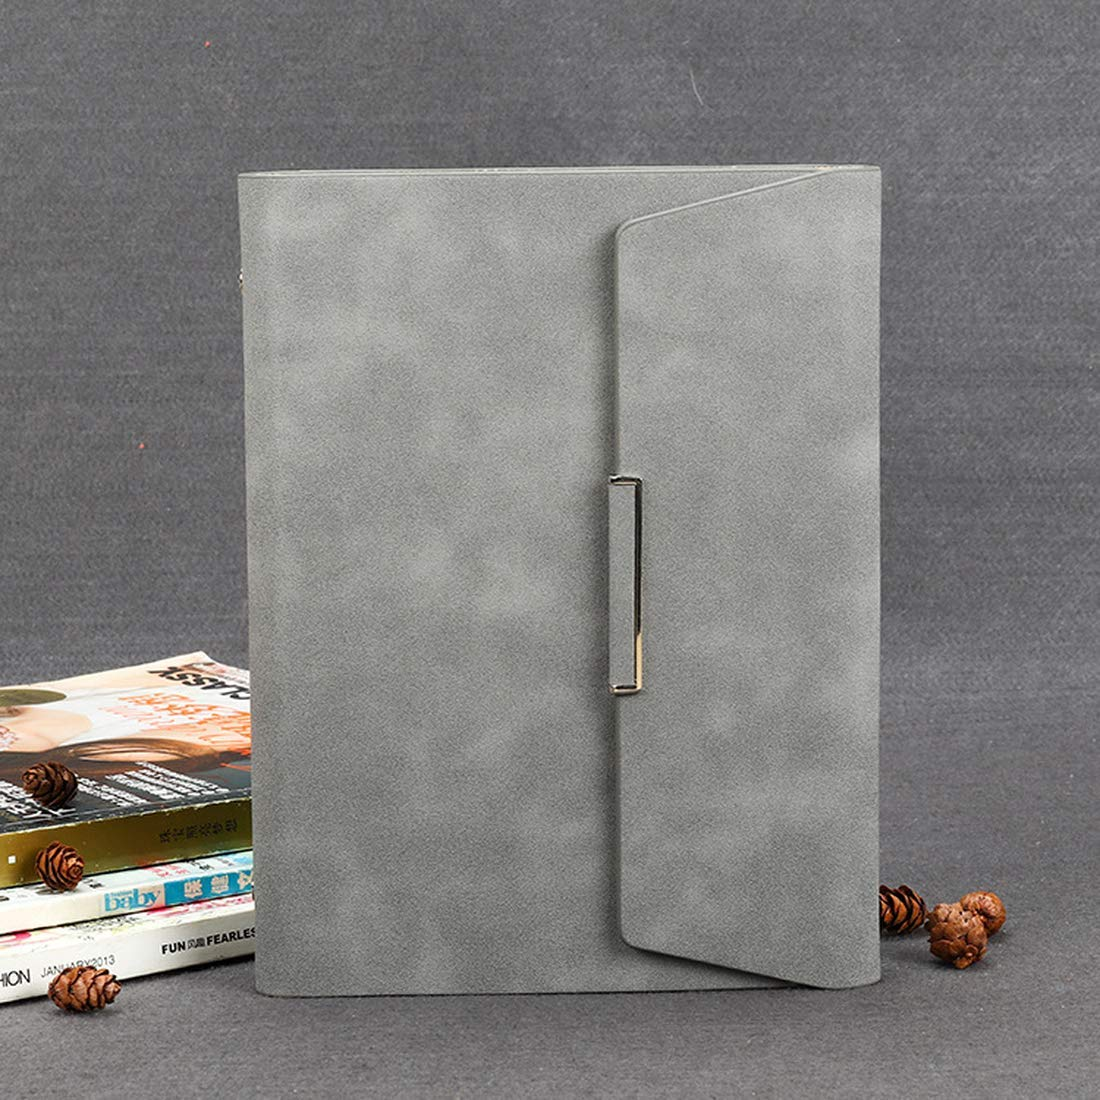 Loose-Leaf Student Book Stationery Supplies Business Notebook Imitation Leather Advertising Notepad